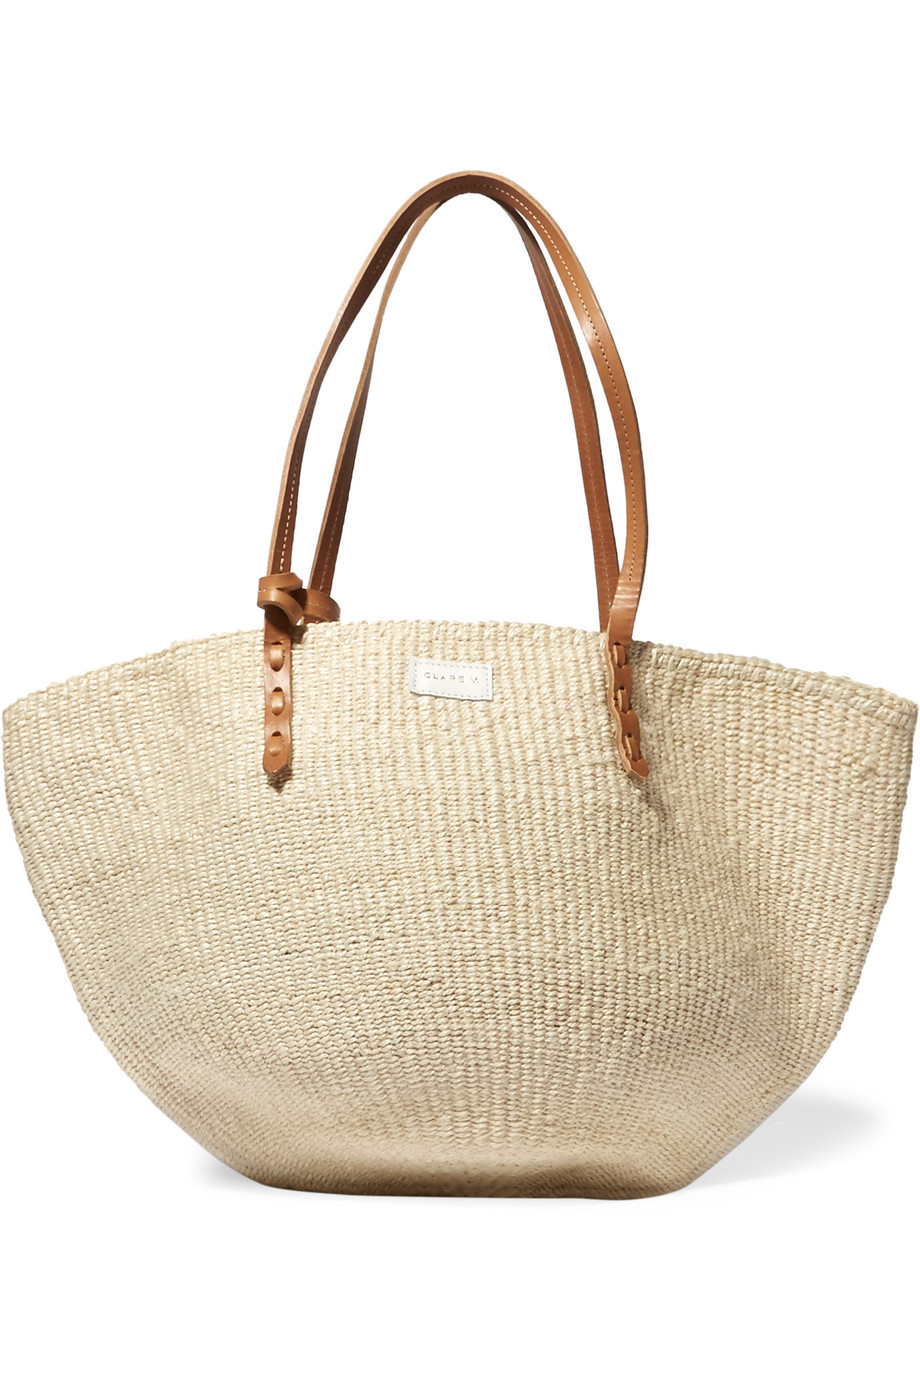 Clare V Kenya Maison Leather-Trimmed Sisal Tote, Cream, Women's